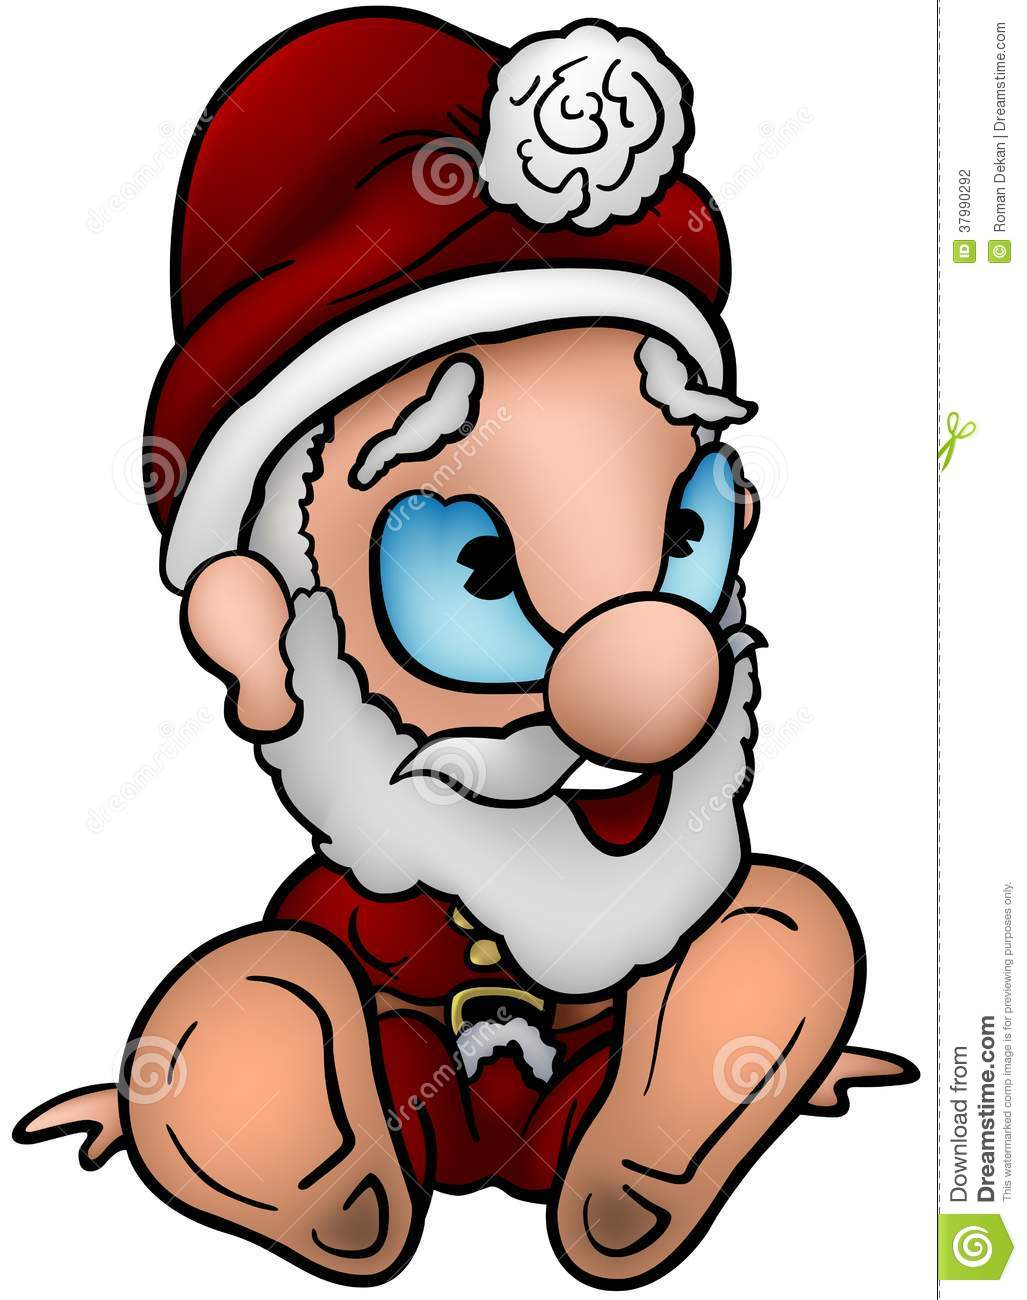 Sitting Santa Claus - Colored Cartoon Illustration, Vector.